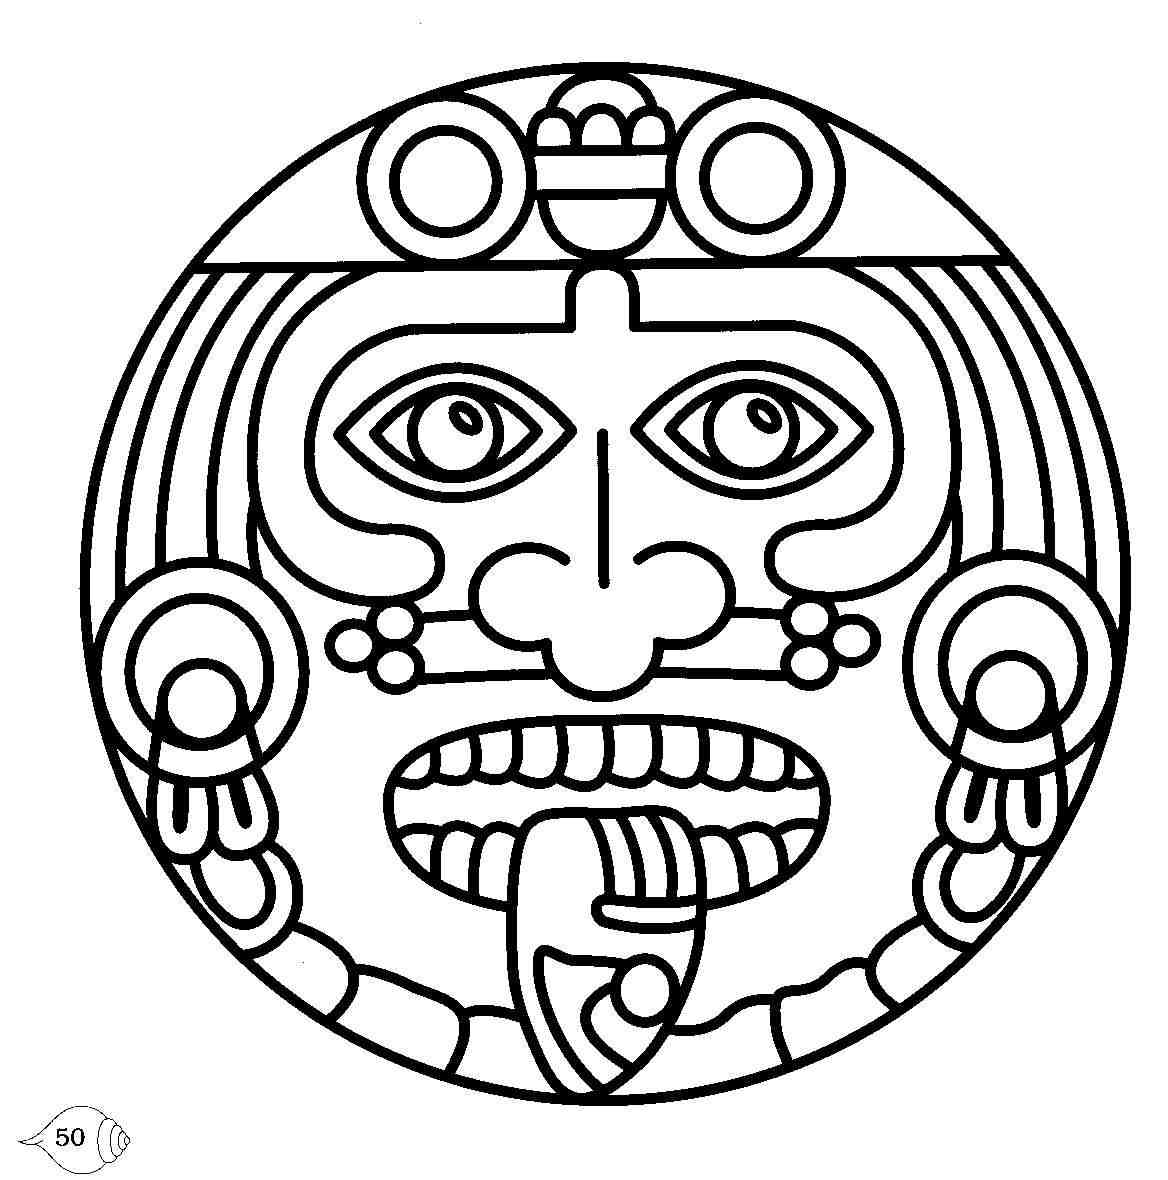 Ancient Aztec Image Design Water Transfer Temporary Tattoo(fake Tattoo) Stickers NO.11018